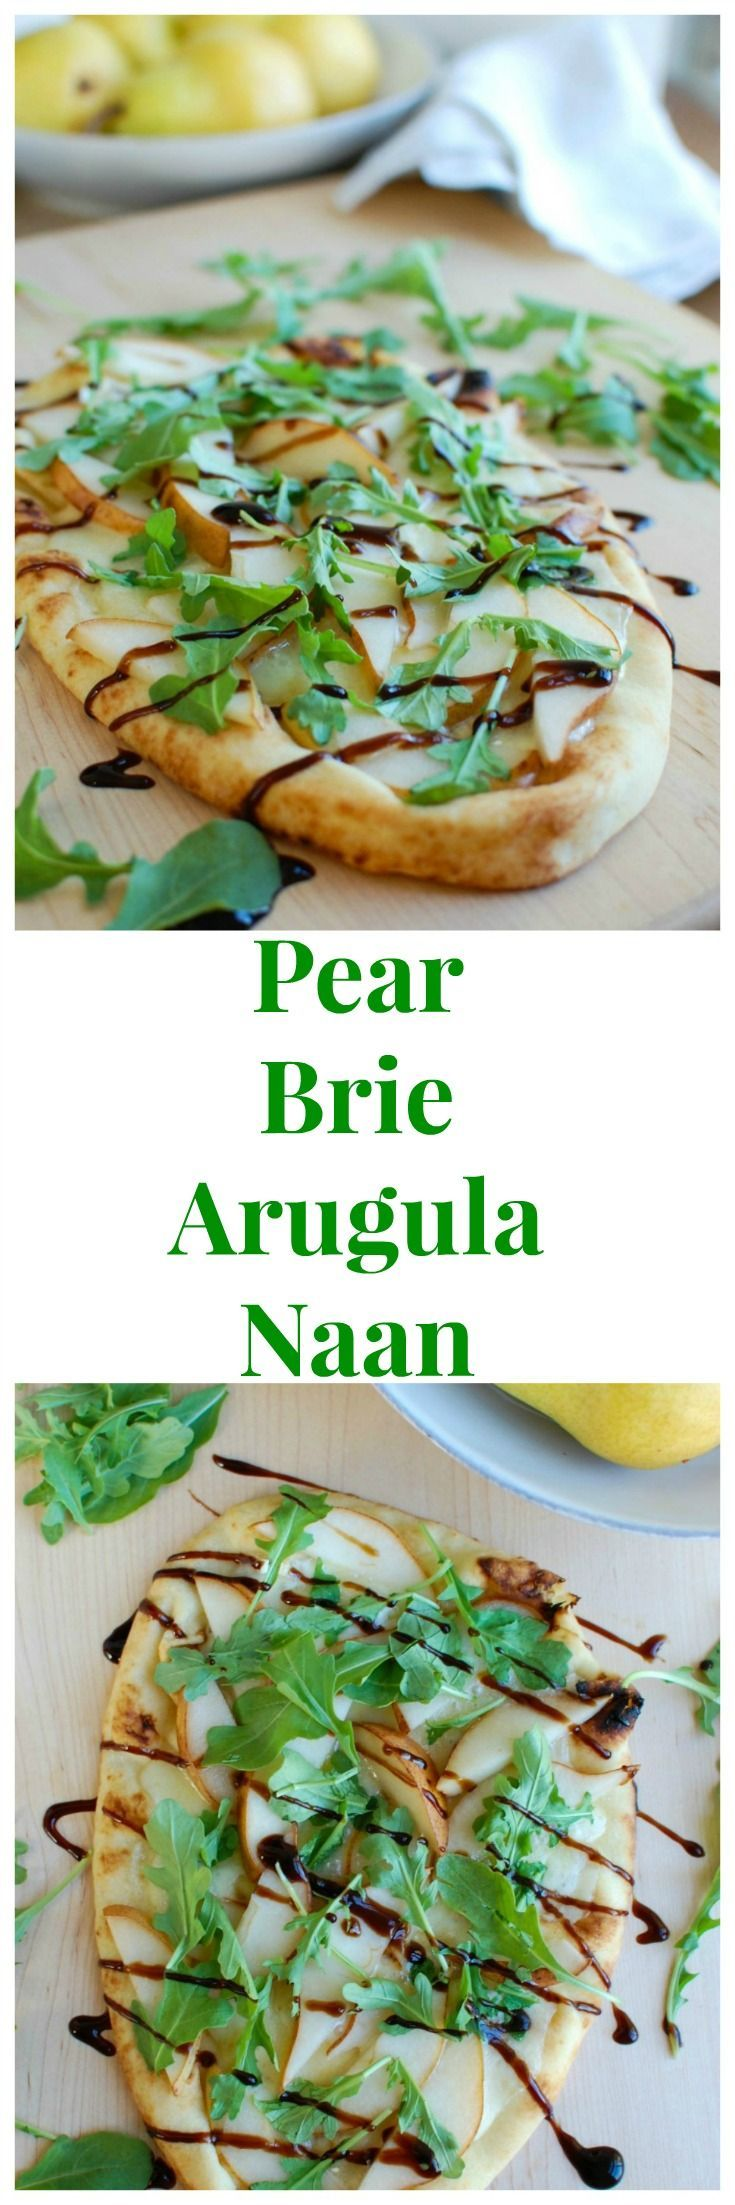 Warm Pear Brie Arugula Naan is the perfect holiday appetizer that will impress your guests. This beautiful flatbread is warmed in the oven with brie cheese and pear and then topped with arugula and a drizzle of balsamic glaze.   // A Cedar Spoon